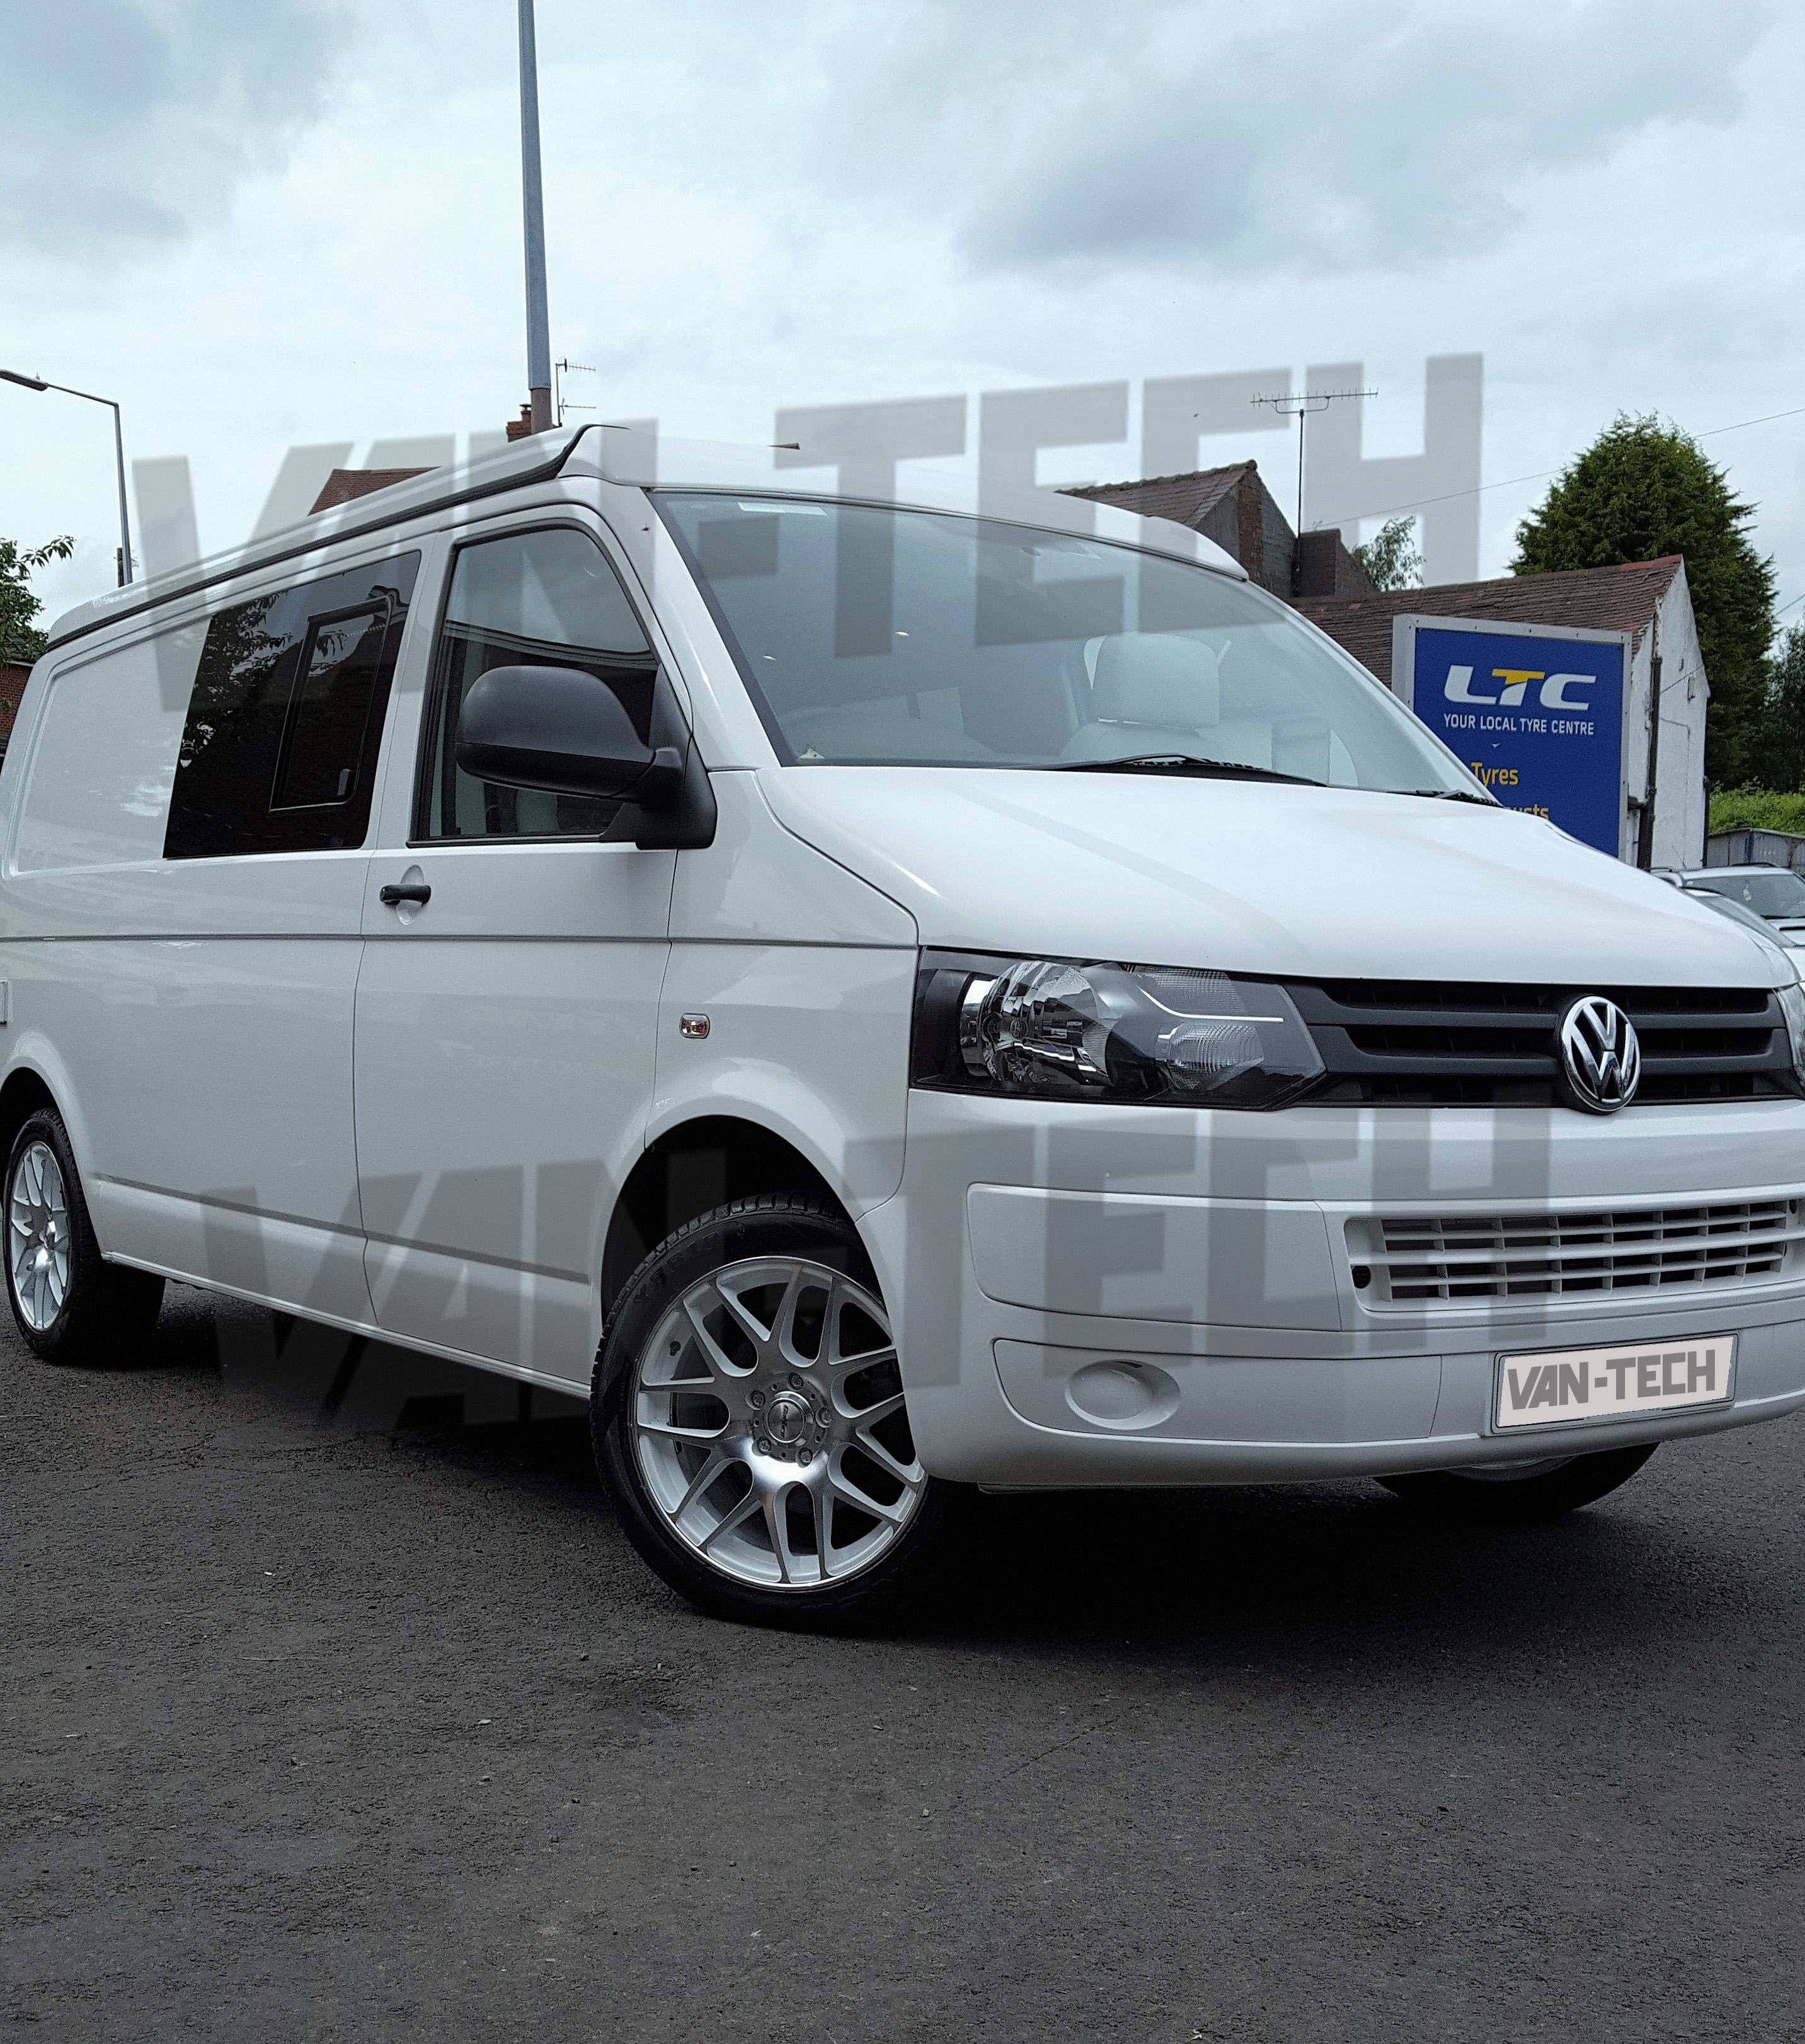 calibre exile 18 alloy wheels polished white vw t5 van van tech. Black Bedroom Furniture Sets. Home Design Ideas